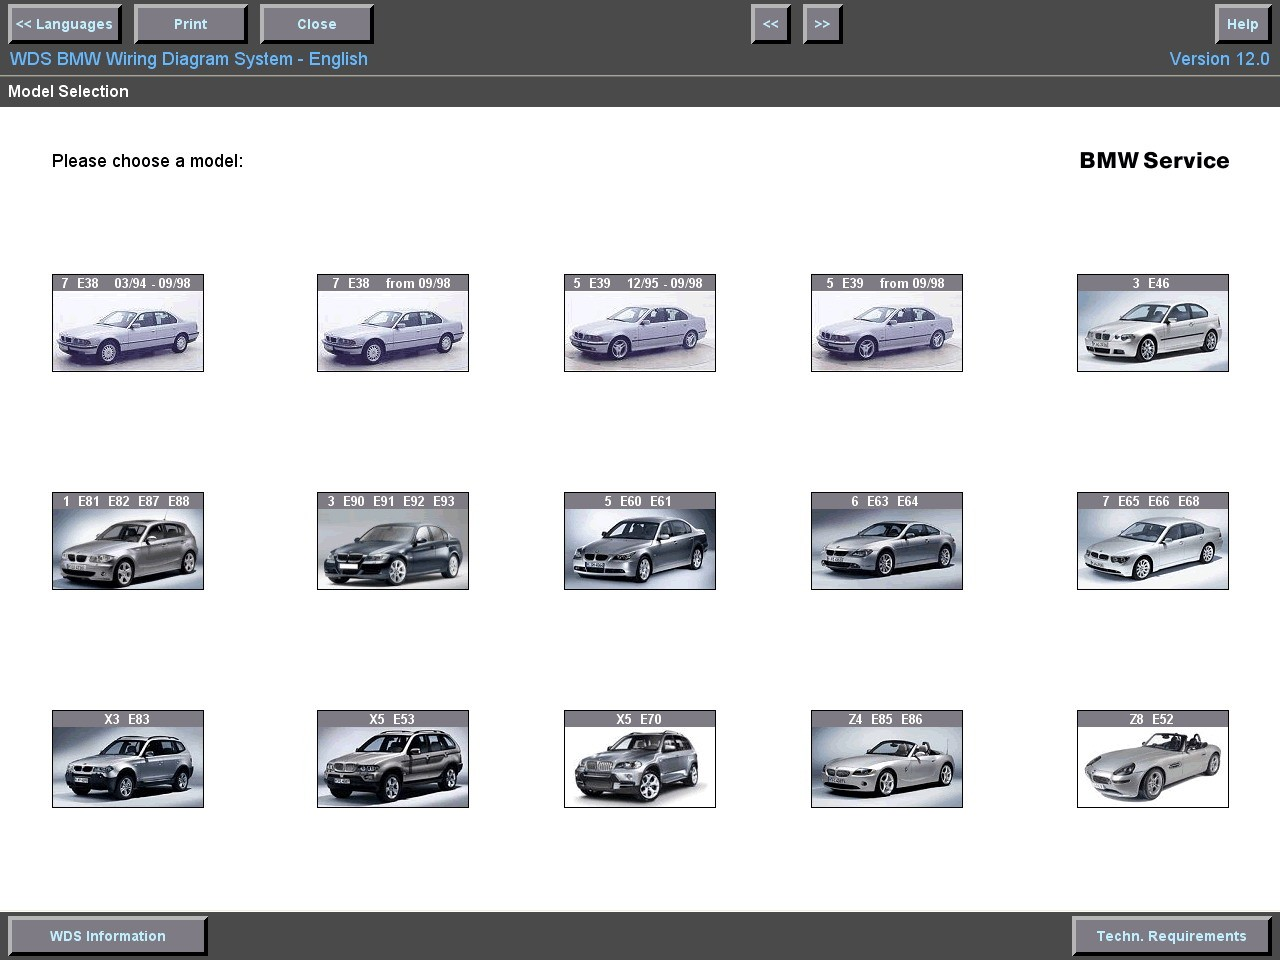 Wds Bmw Wiring Diagrams Online As Well Wds Bmw Wiring Diagrams Online